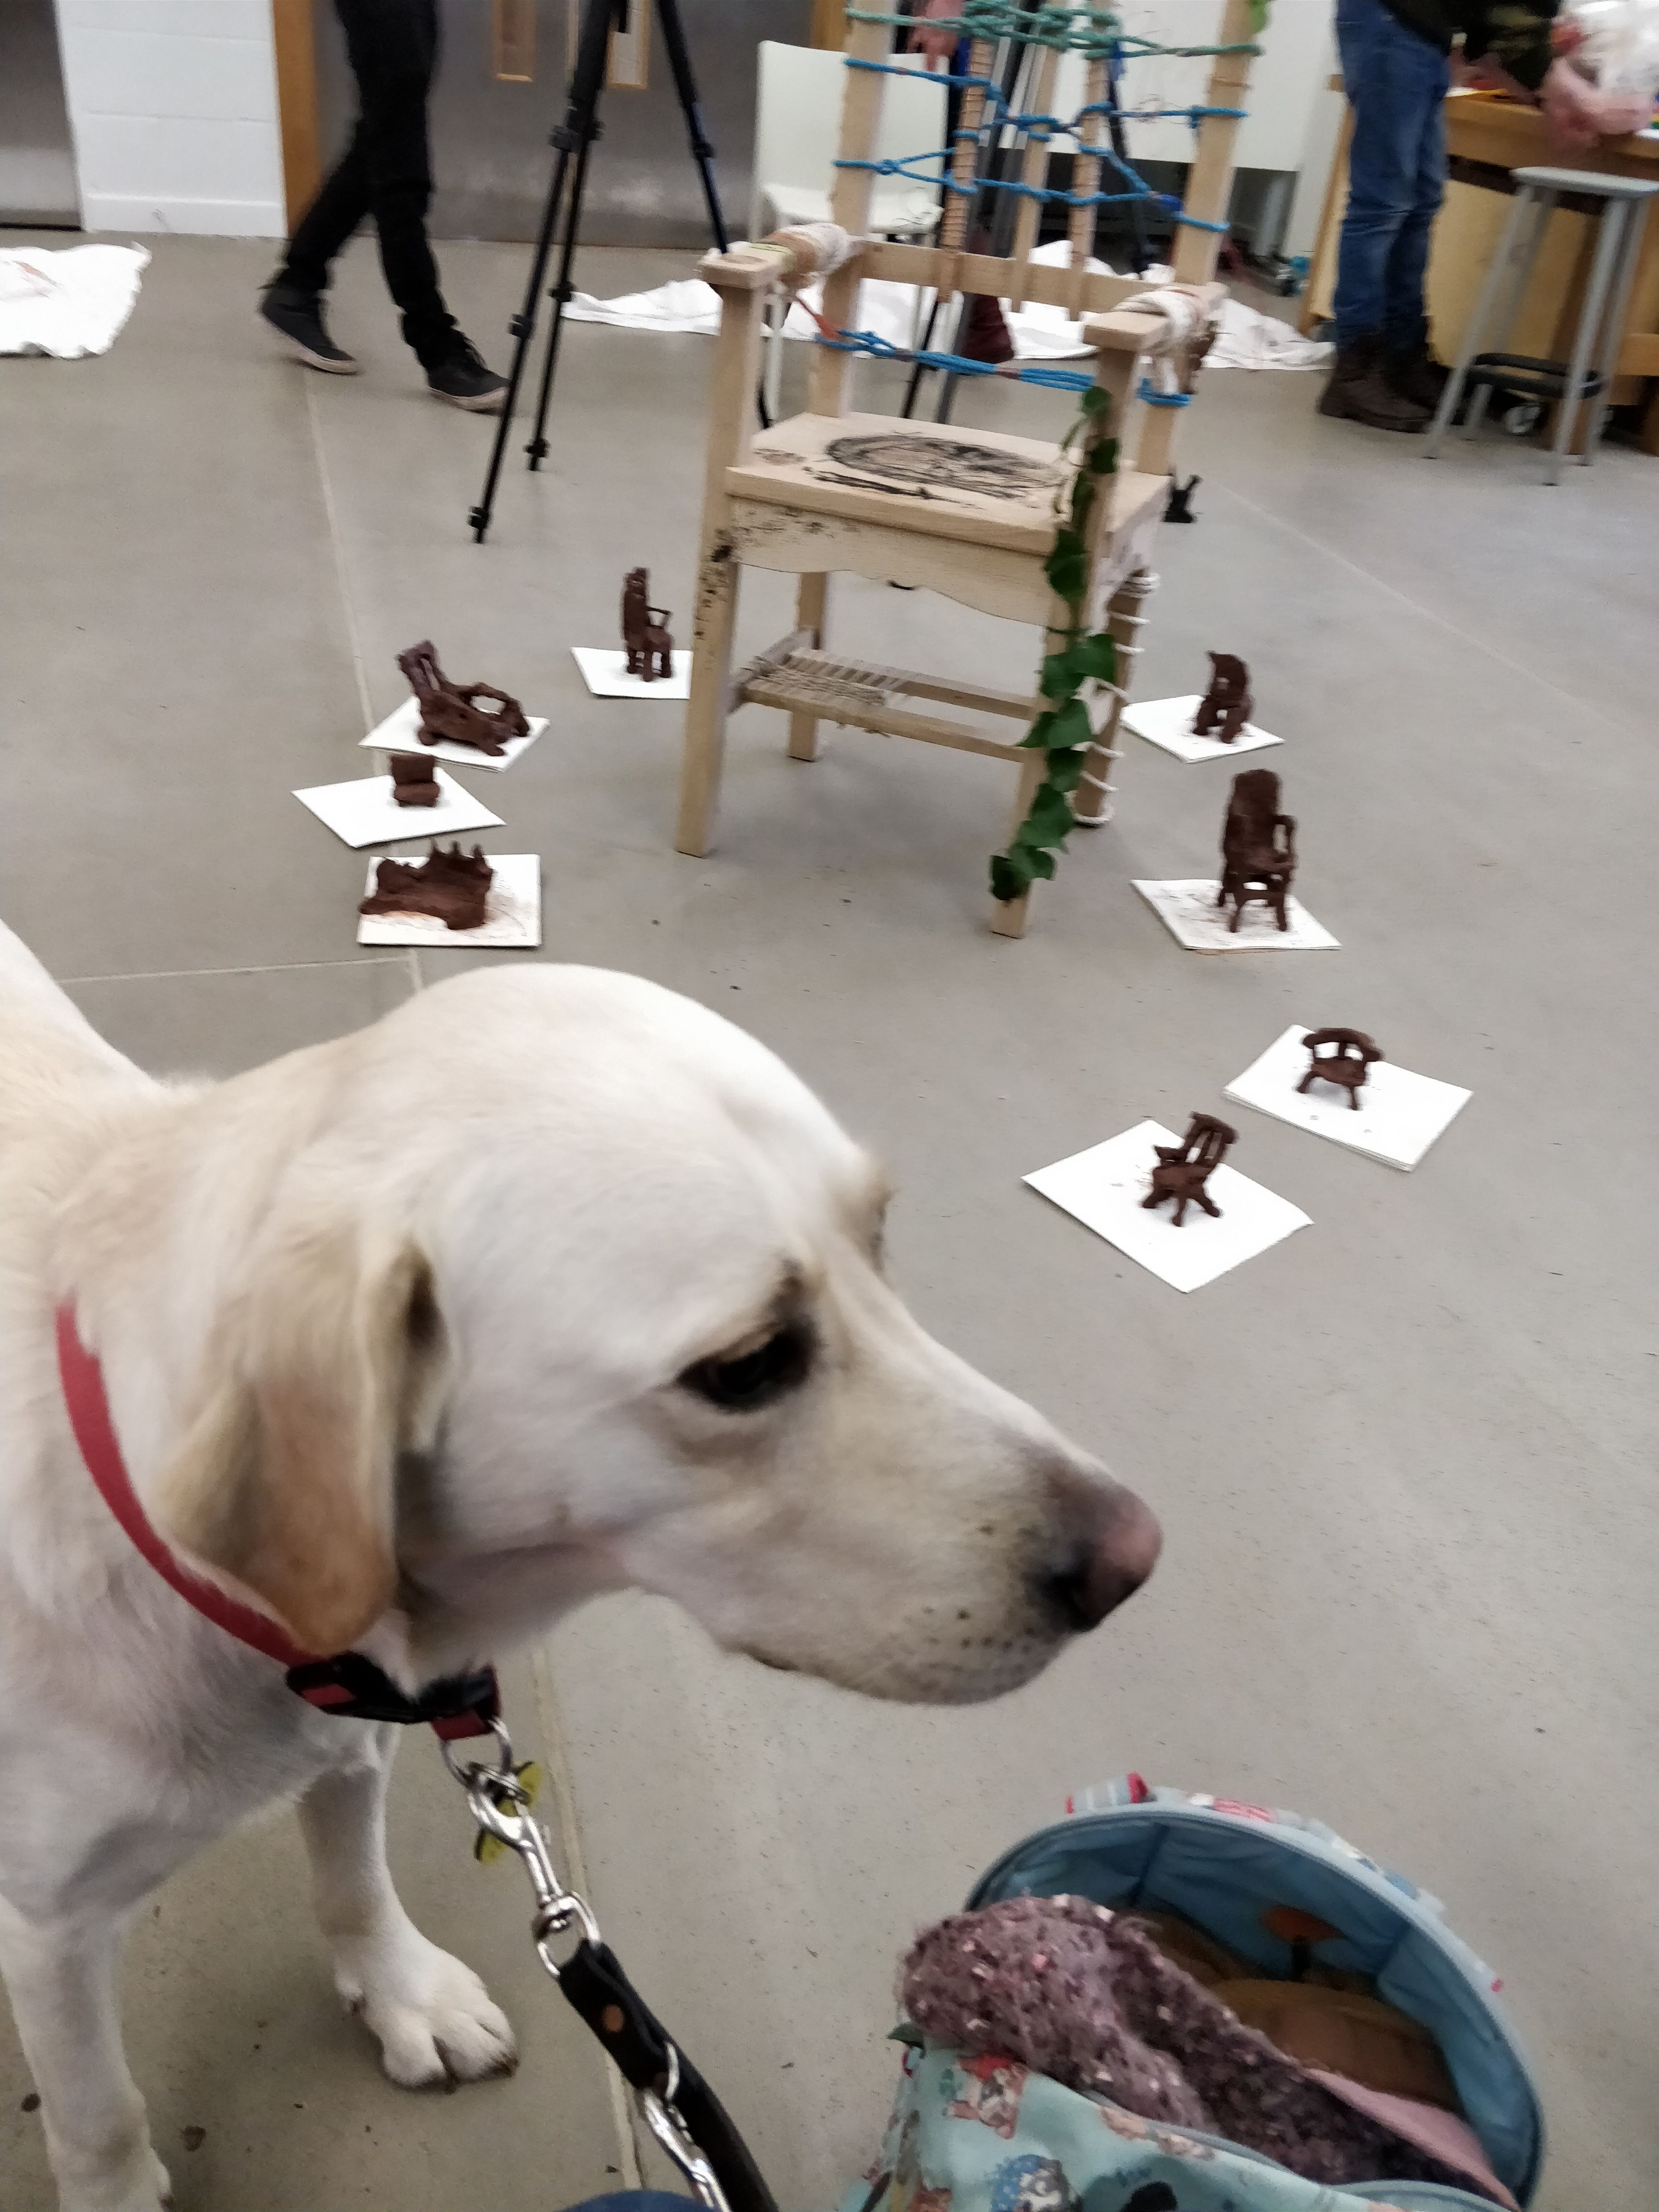 Guide Dog Uri with some hand-crafted chairs in the background